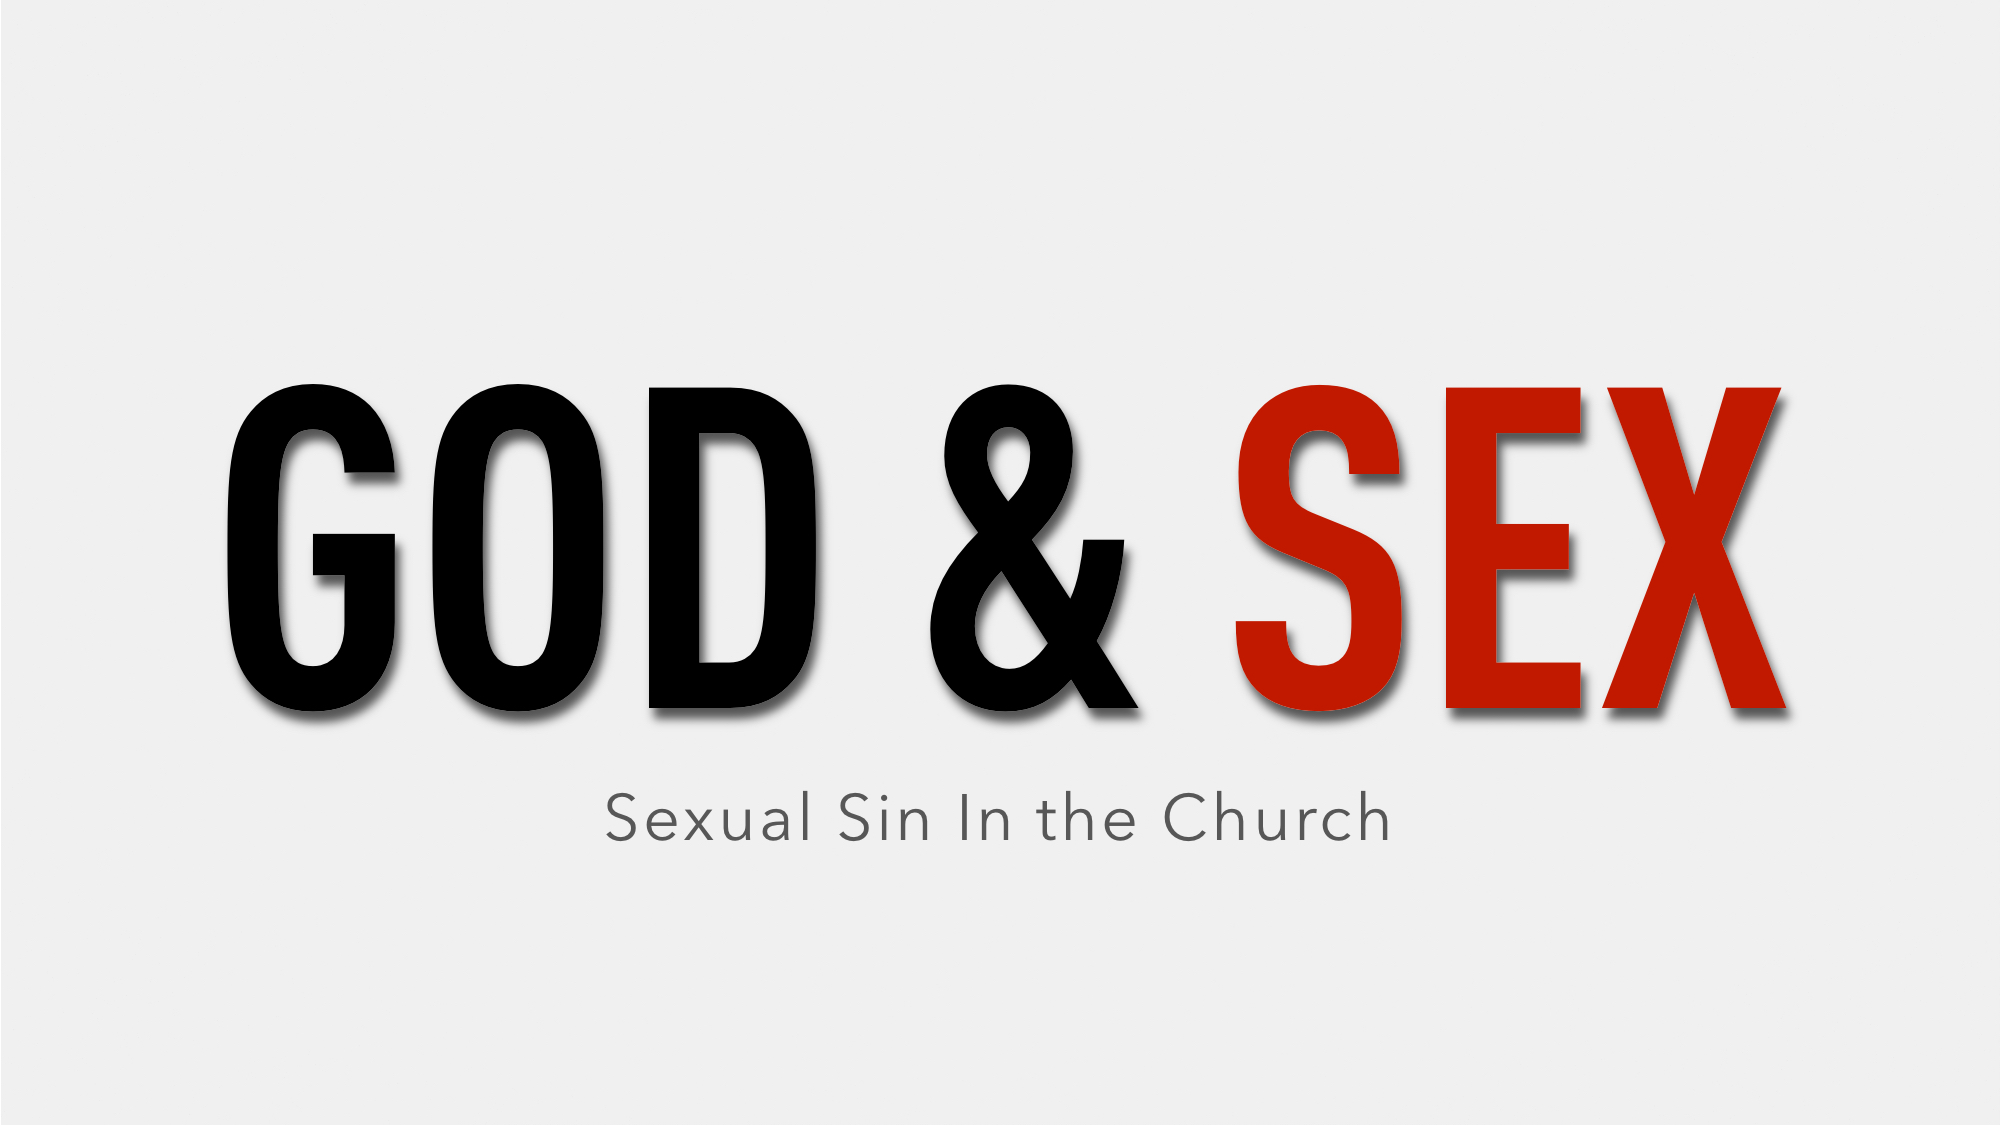 Sexual Sin In the Church